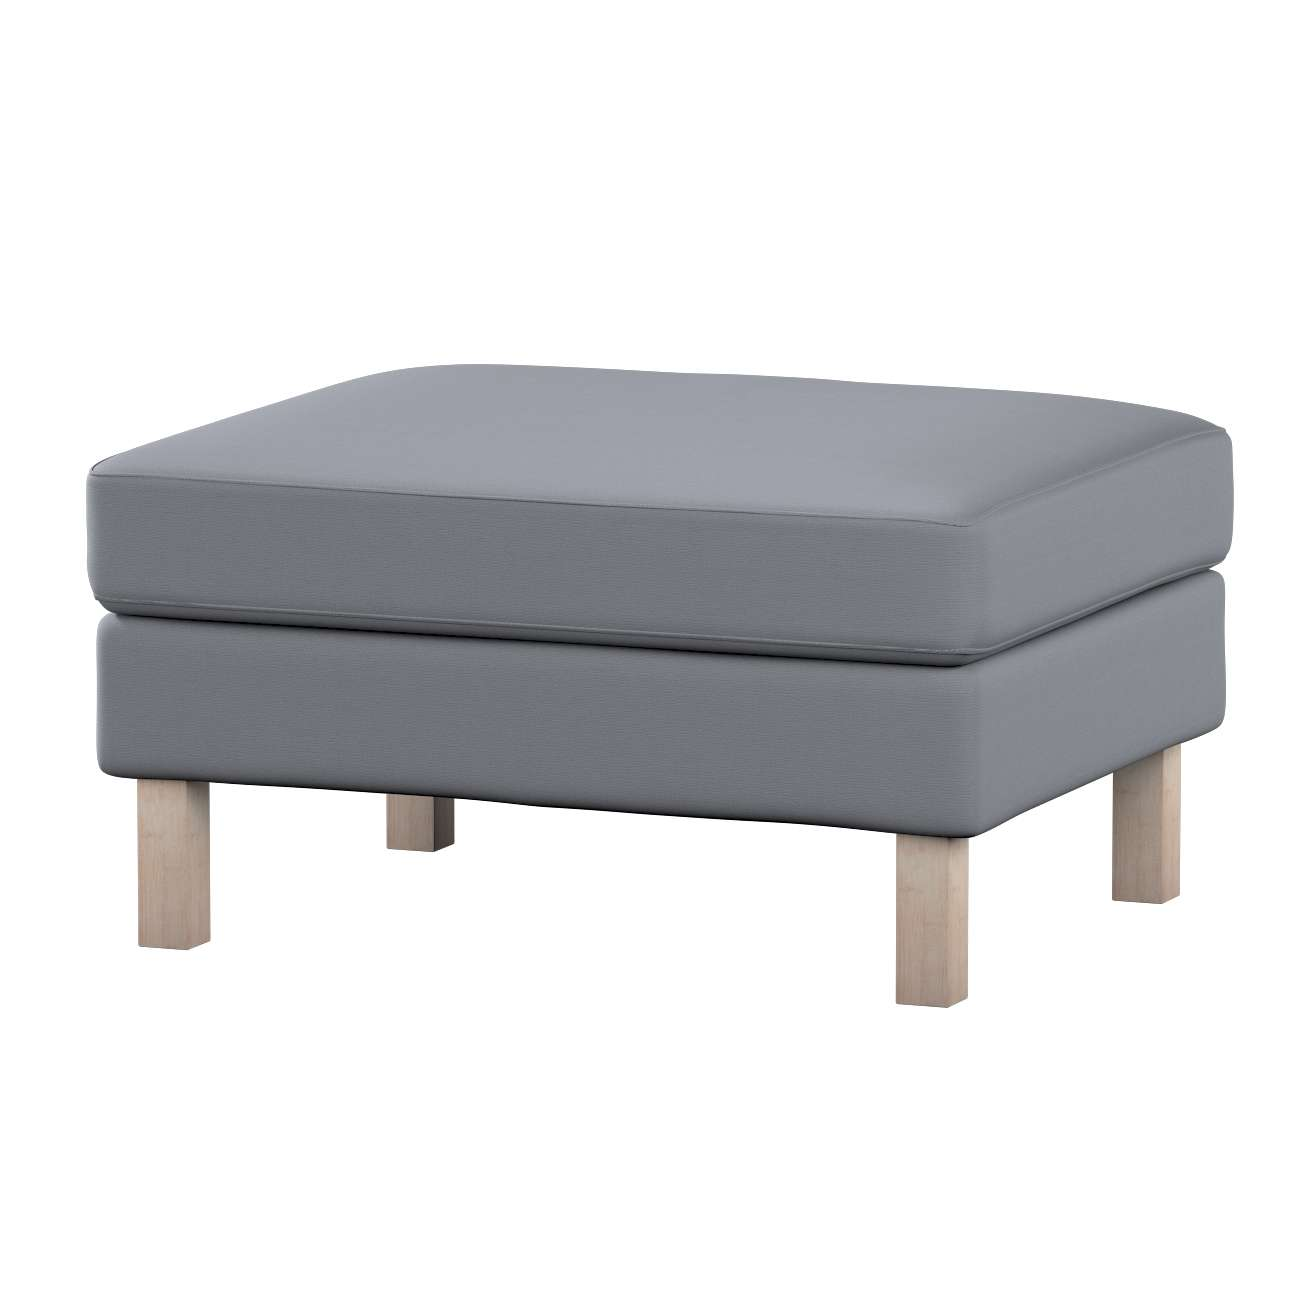 Karlstad footstool cover Karlstad footstool cover in collection Cotton Panama, fabric: 702-07